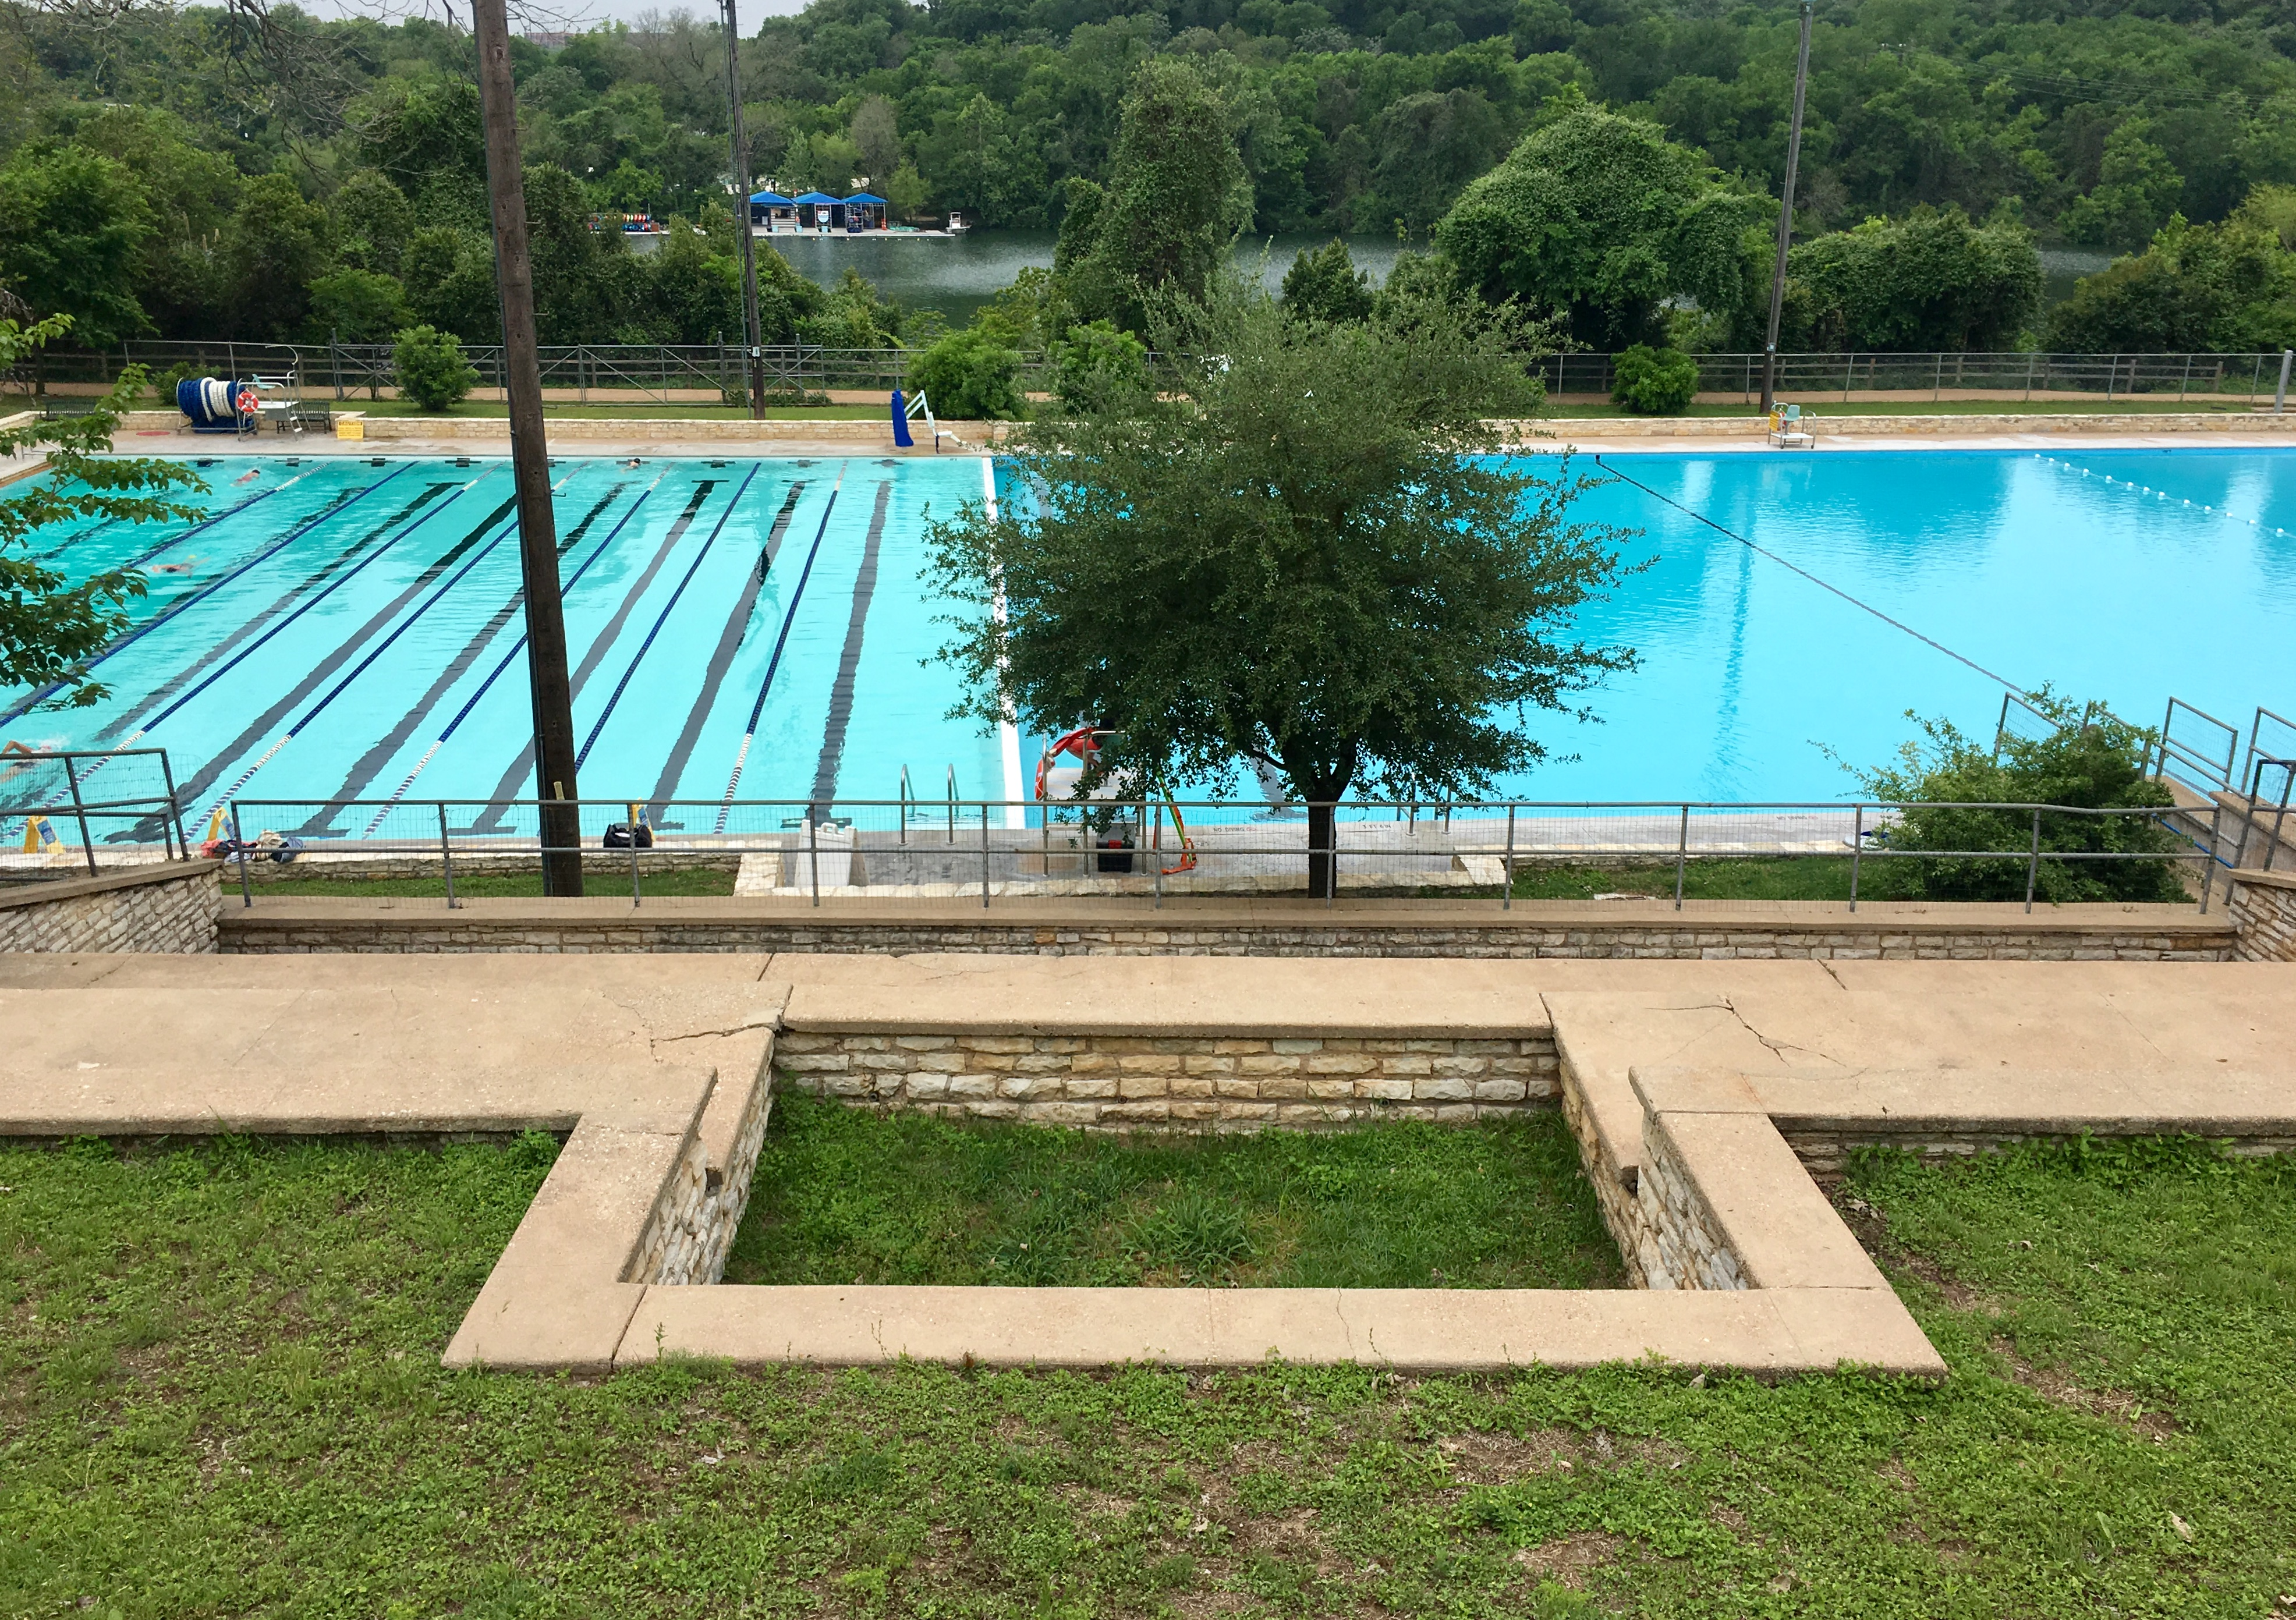 View of Deep Eddy Pool, located near Miles 6-13 of the Austin Marathon course.